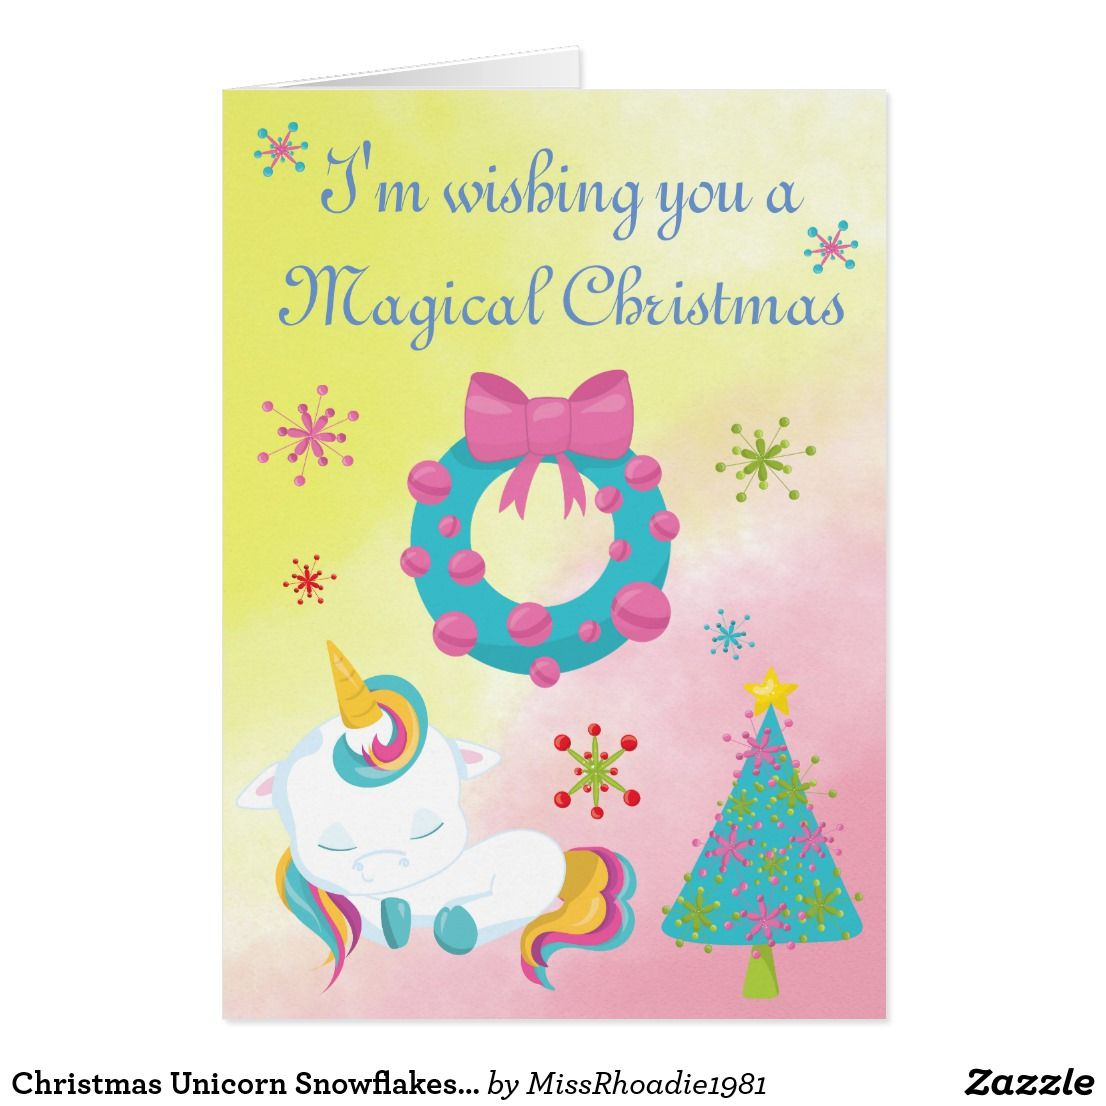 Christmas Unicorn Snowflakes And Wreath Greeting Card A Magical